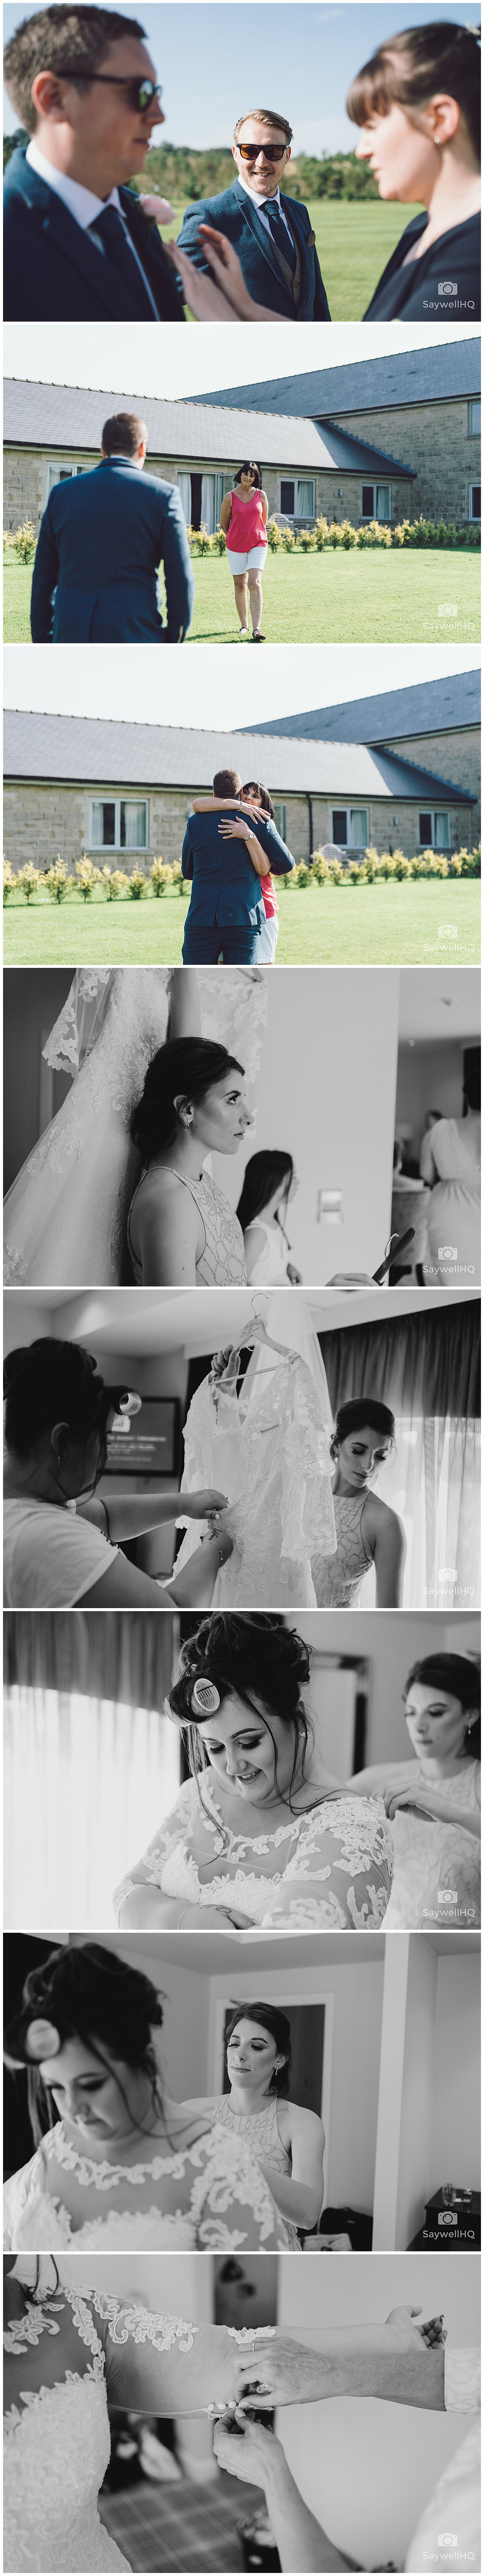 Derby Wedding Photographer - Peak Edge Hotel - bride puts on her wedding dress with help from her mother and bridesmaids